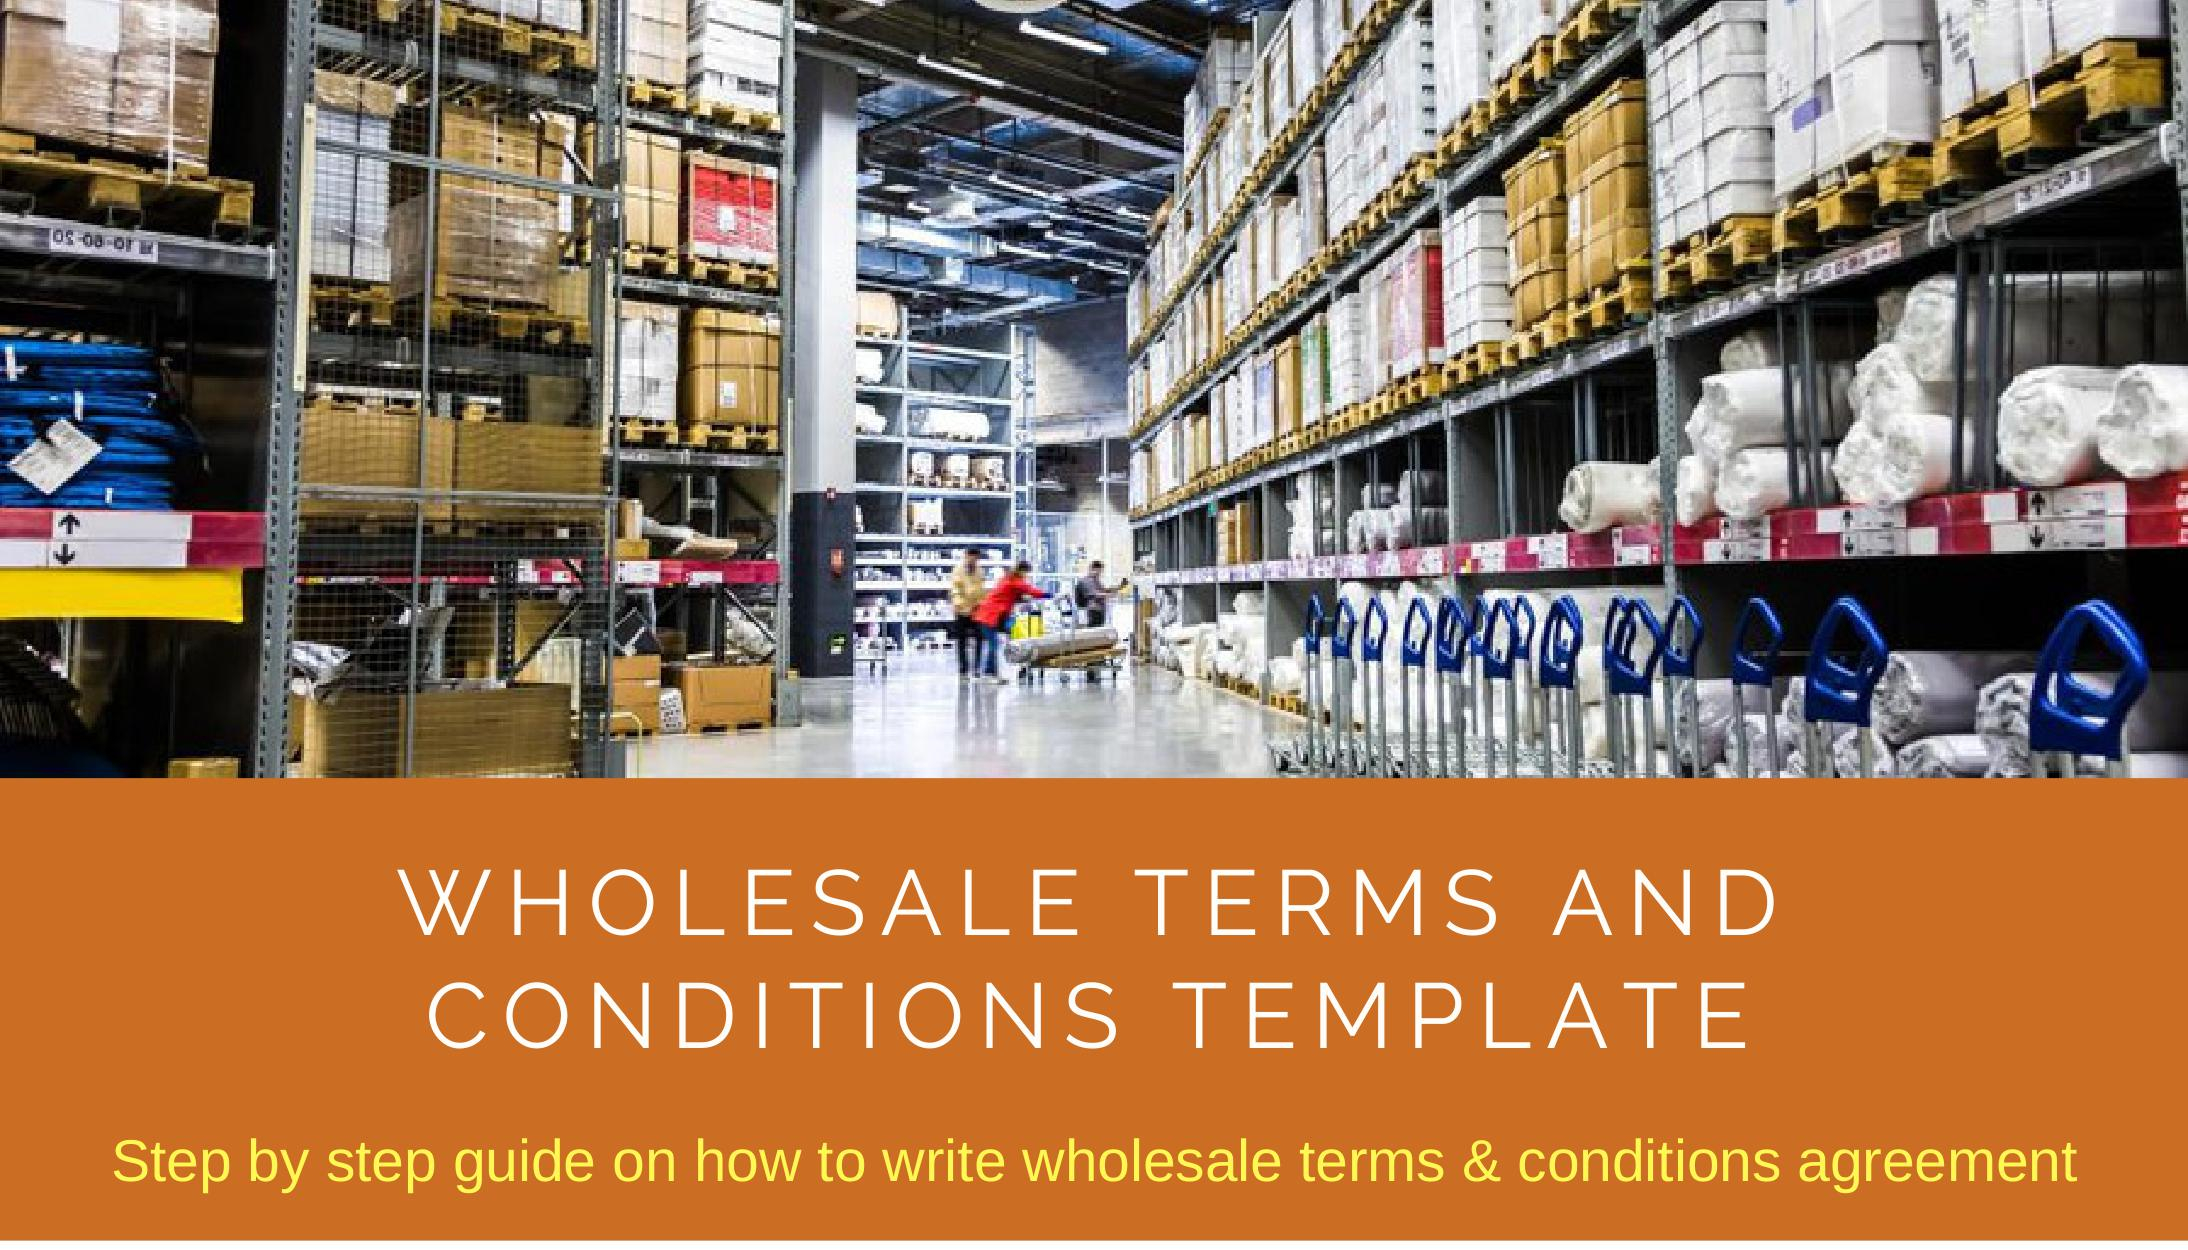 Warehouse Agreement Sample Wholesale Terms And Conditions Template Download Editable Document